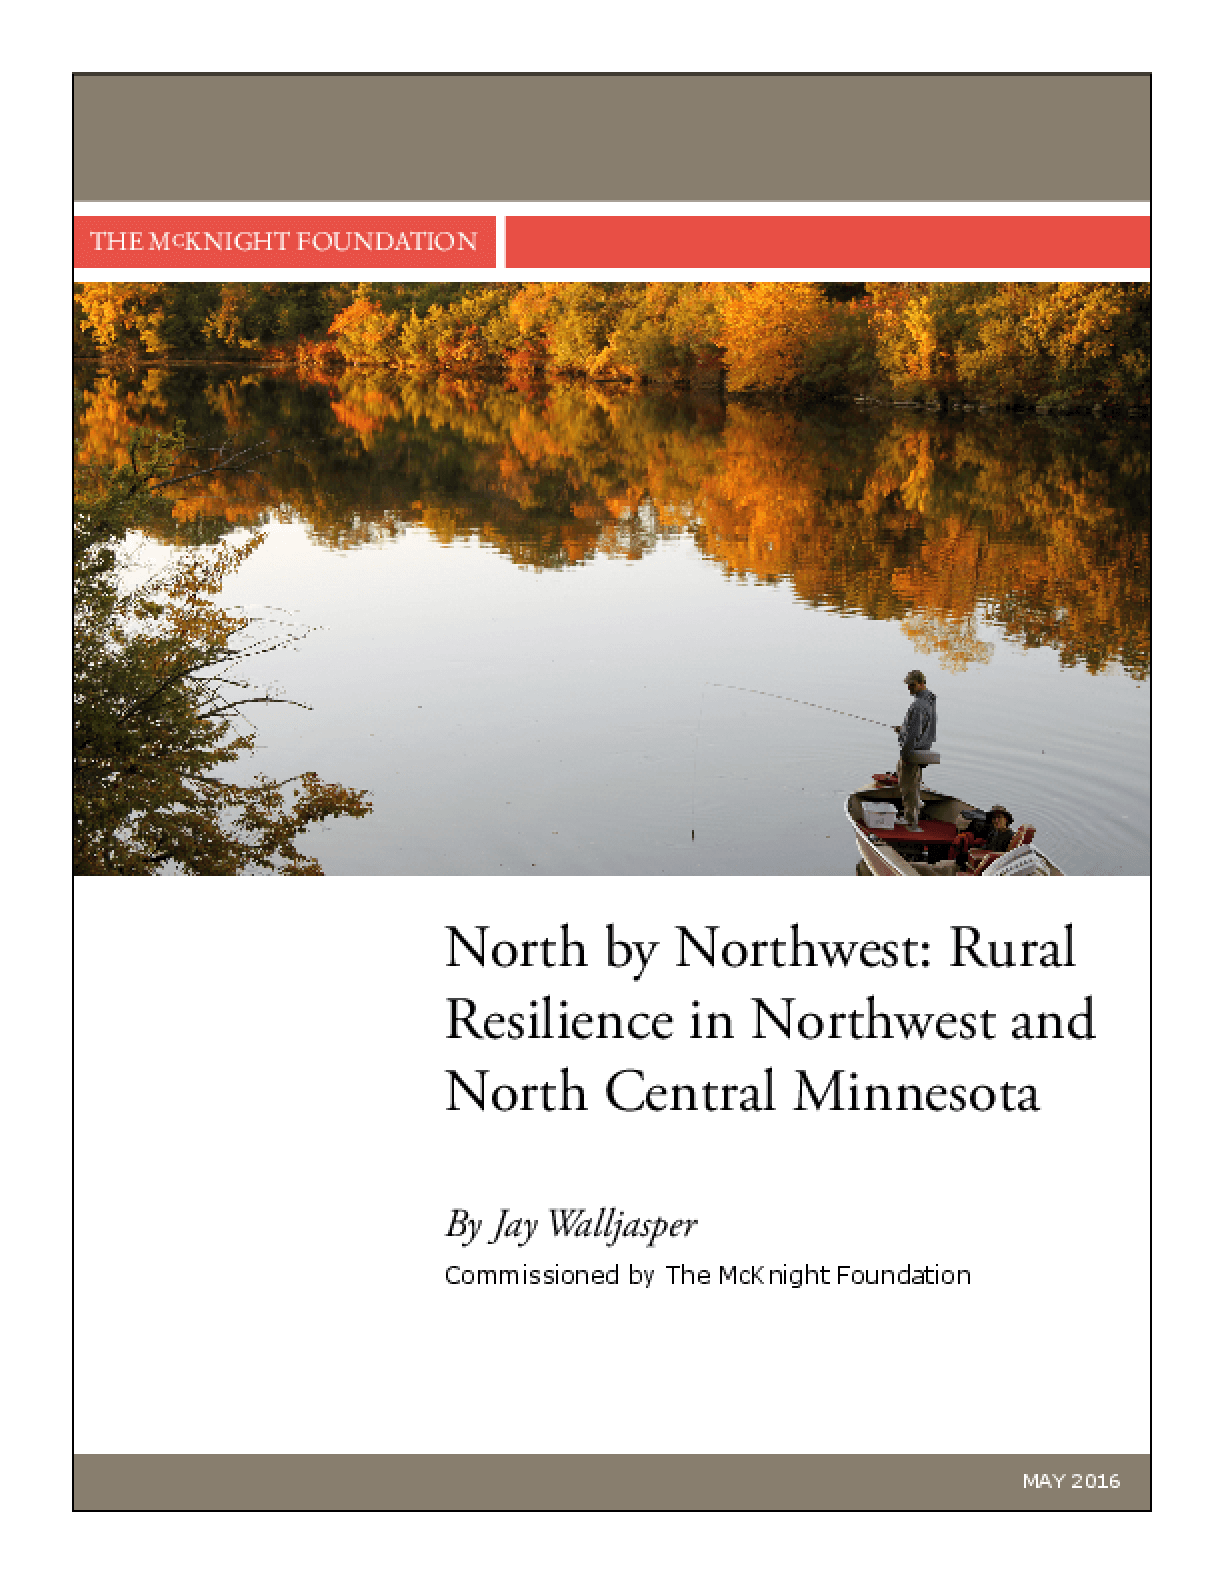 North by Northwest: Rural Resilience in Northwest and North Central Minnesota